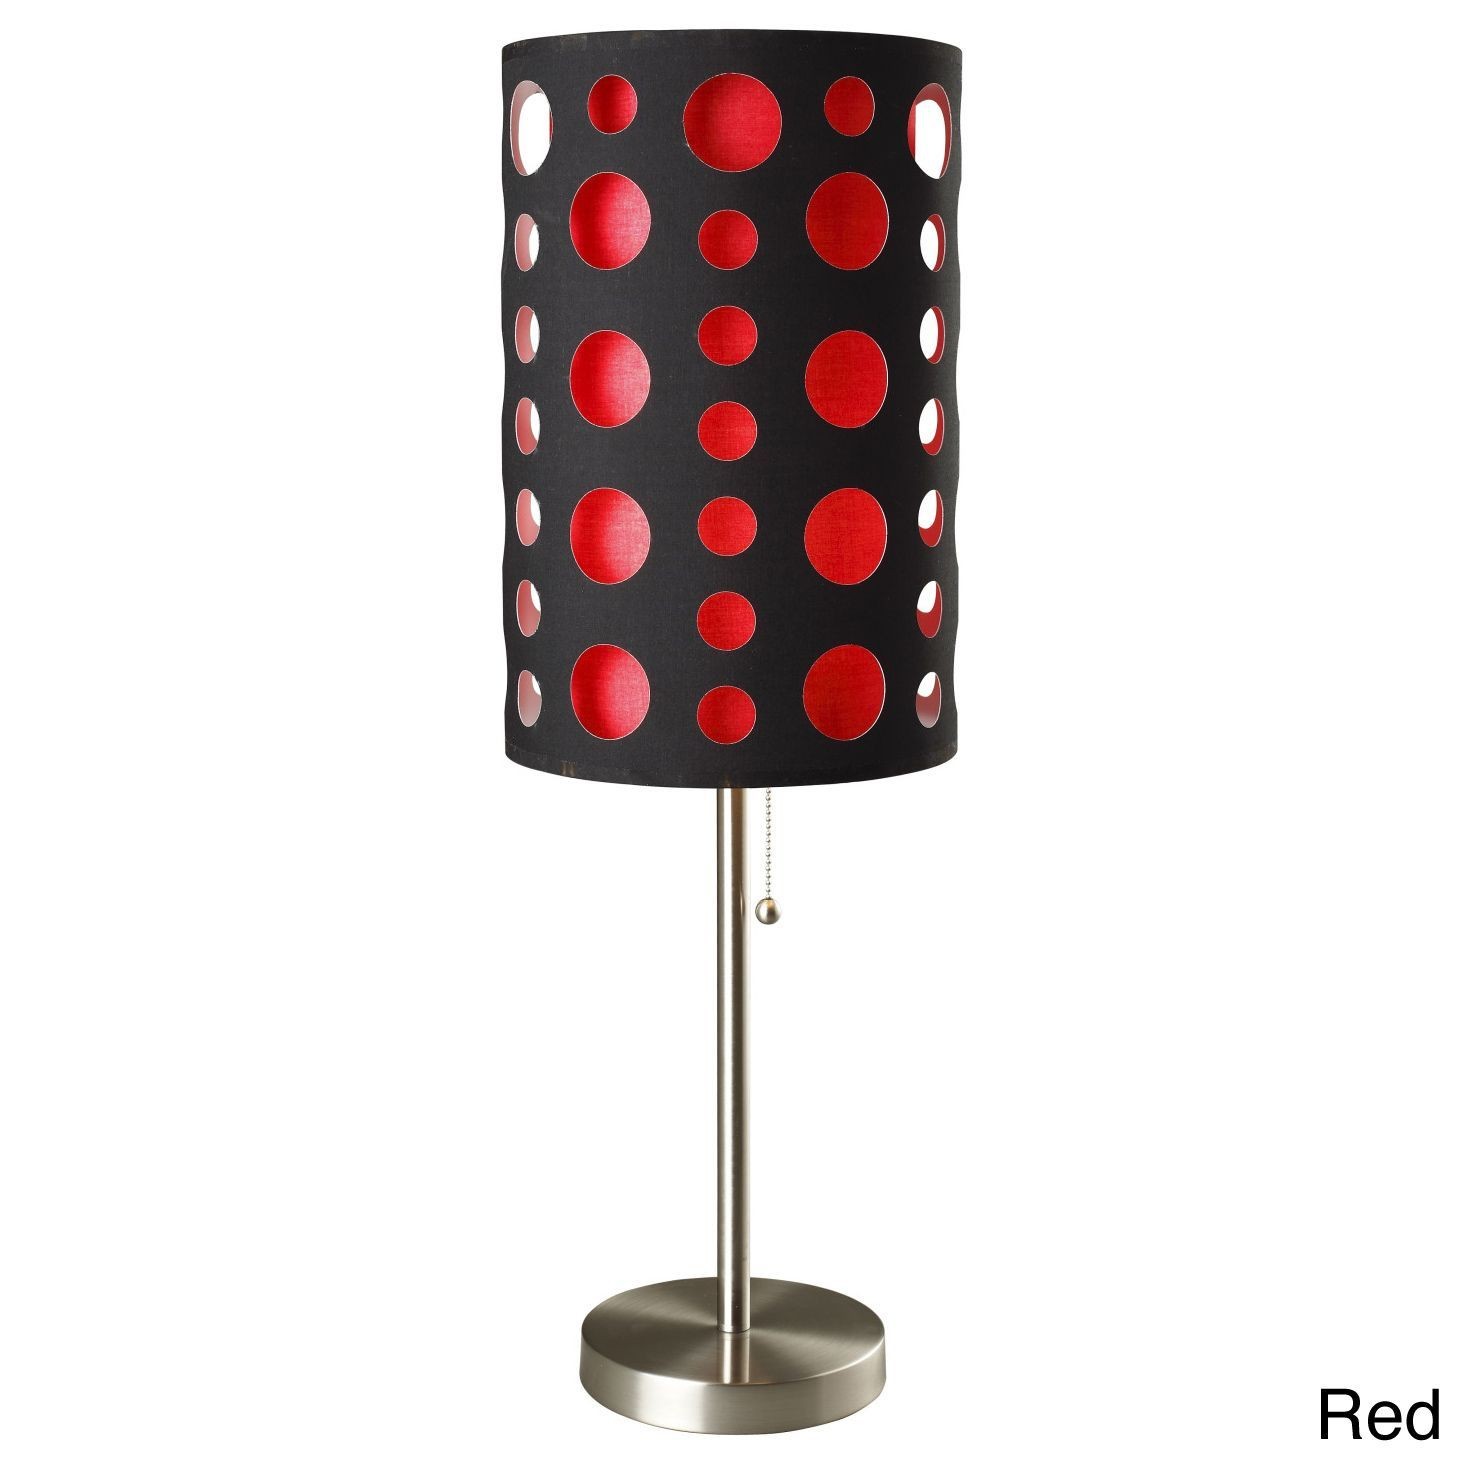 Black 33 inch modern retro table lamp by ore international retro this contemporary and stylish table lamp will brighten up your room while adding a touch of geotapseo Image collections